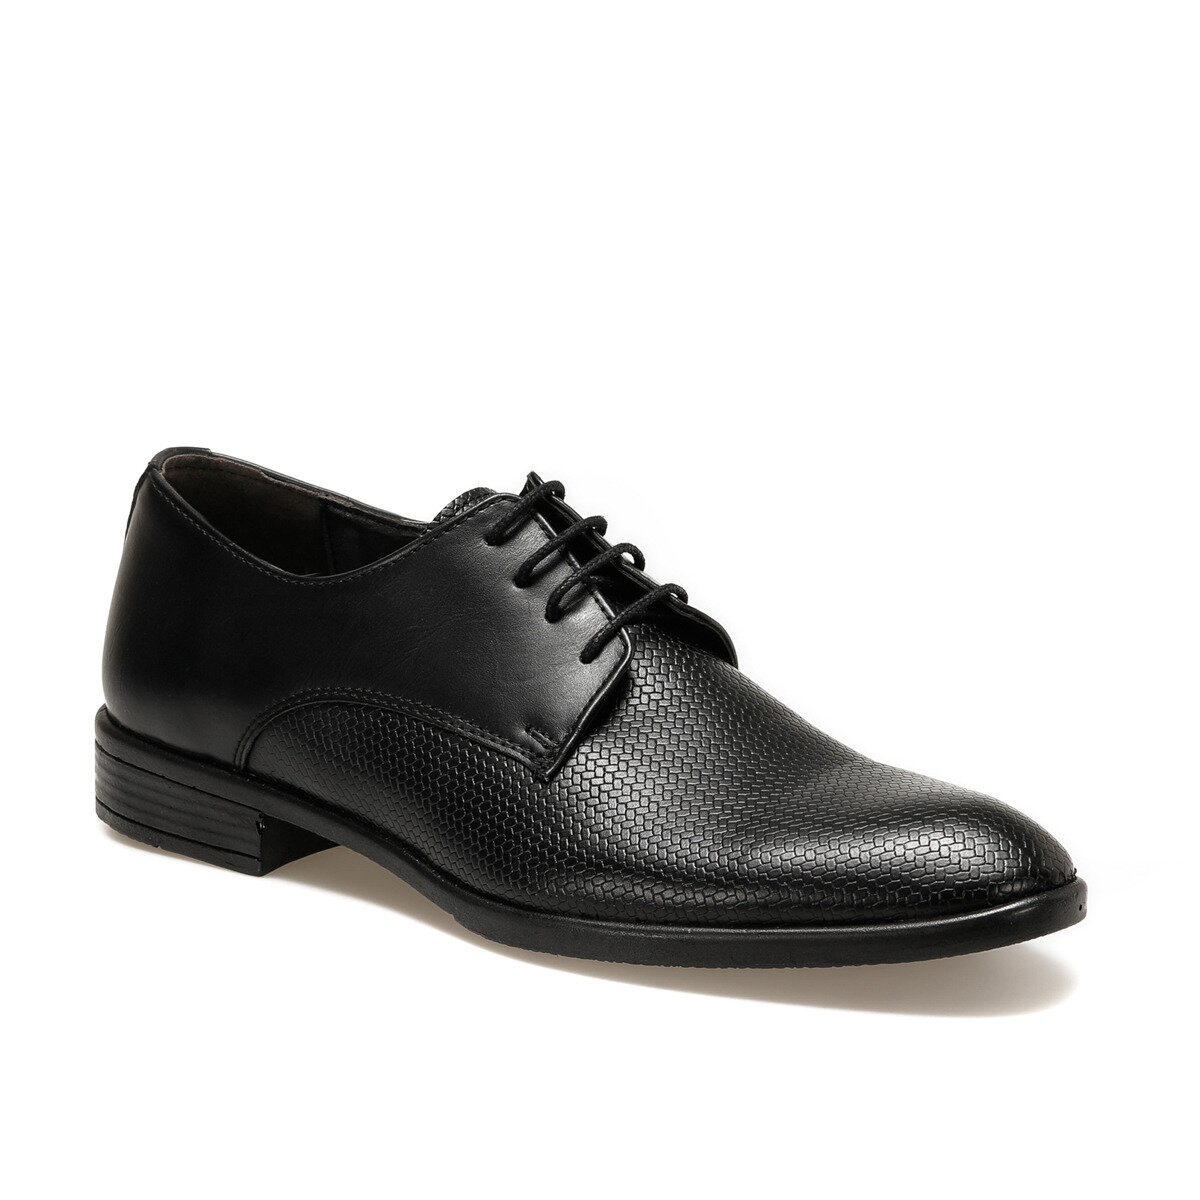 FLO 113-2 Black Men Dress Shoes DOWN TOWN